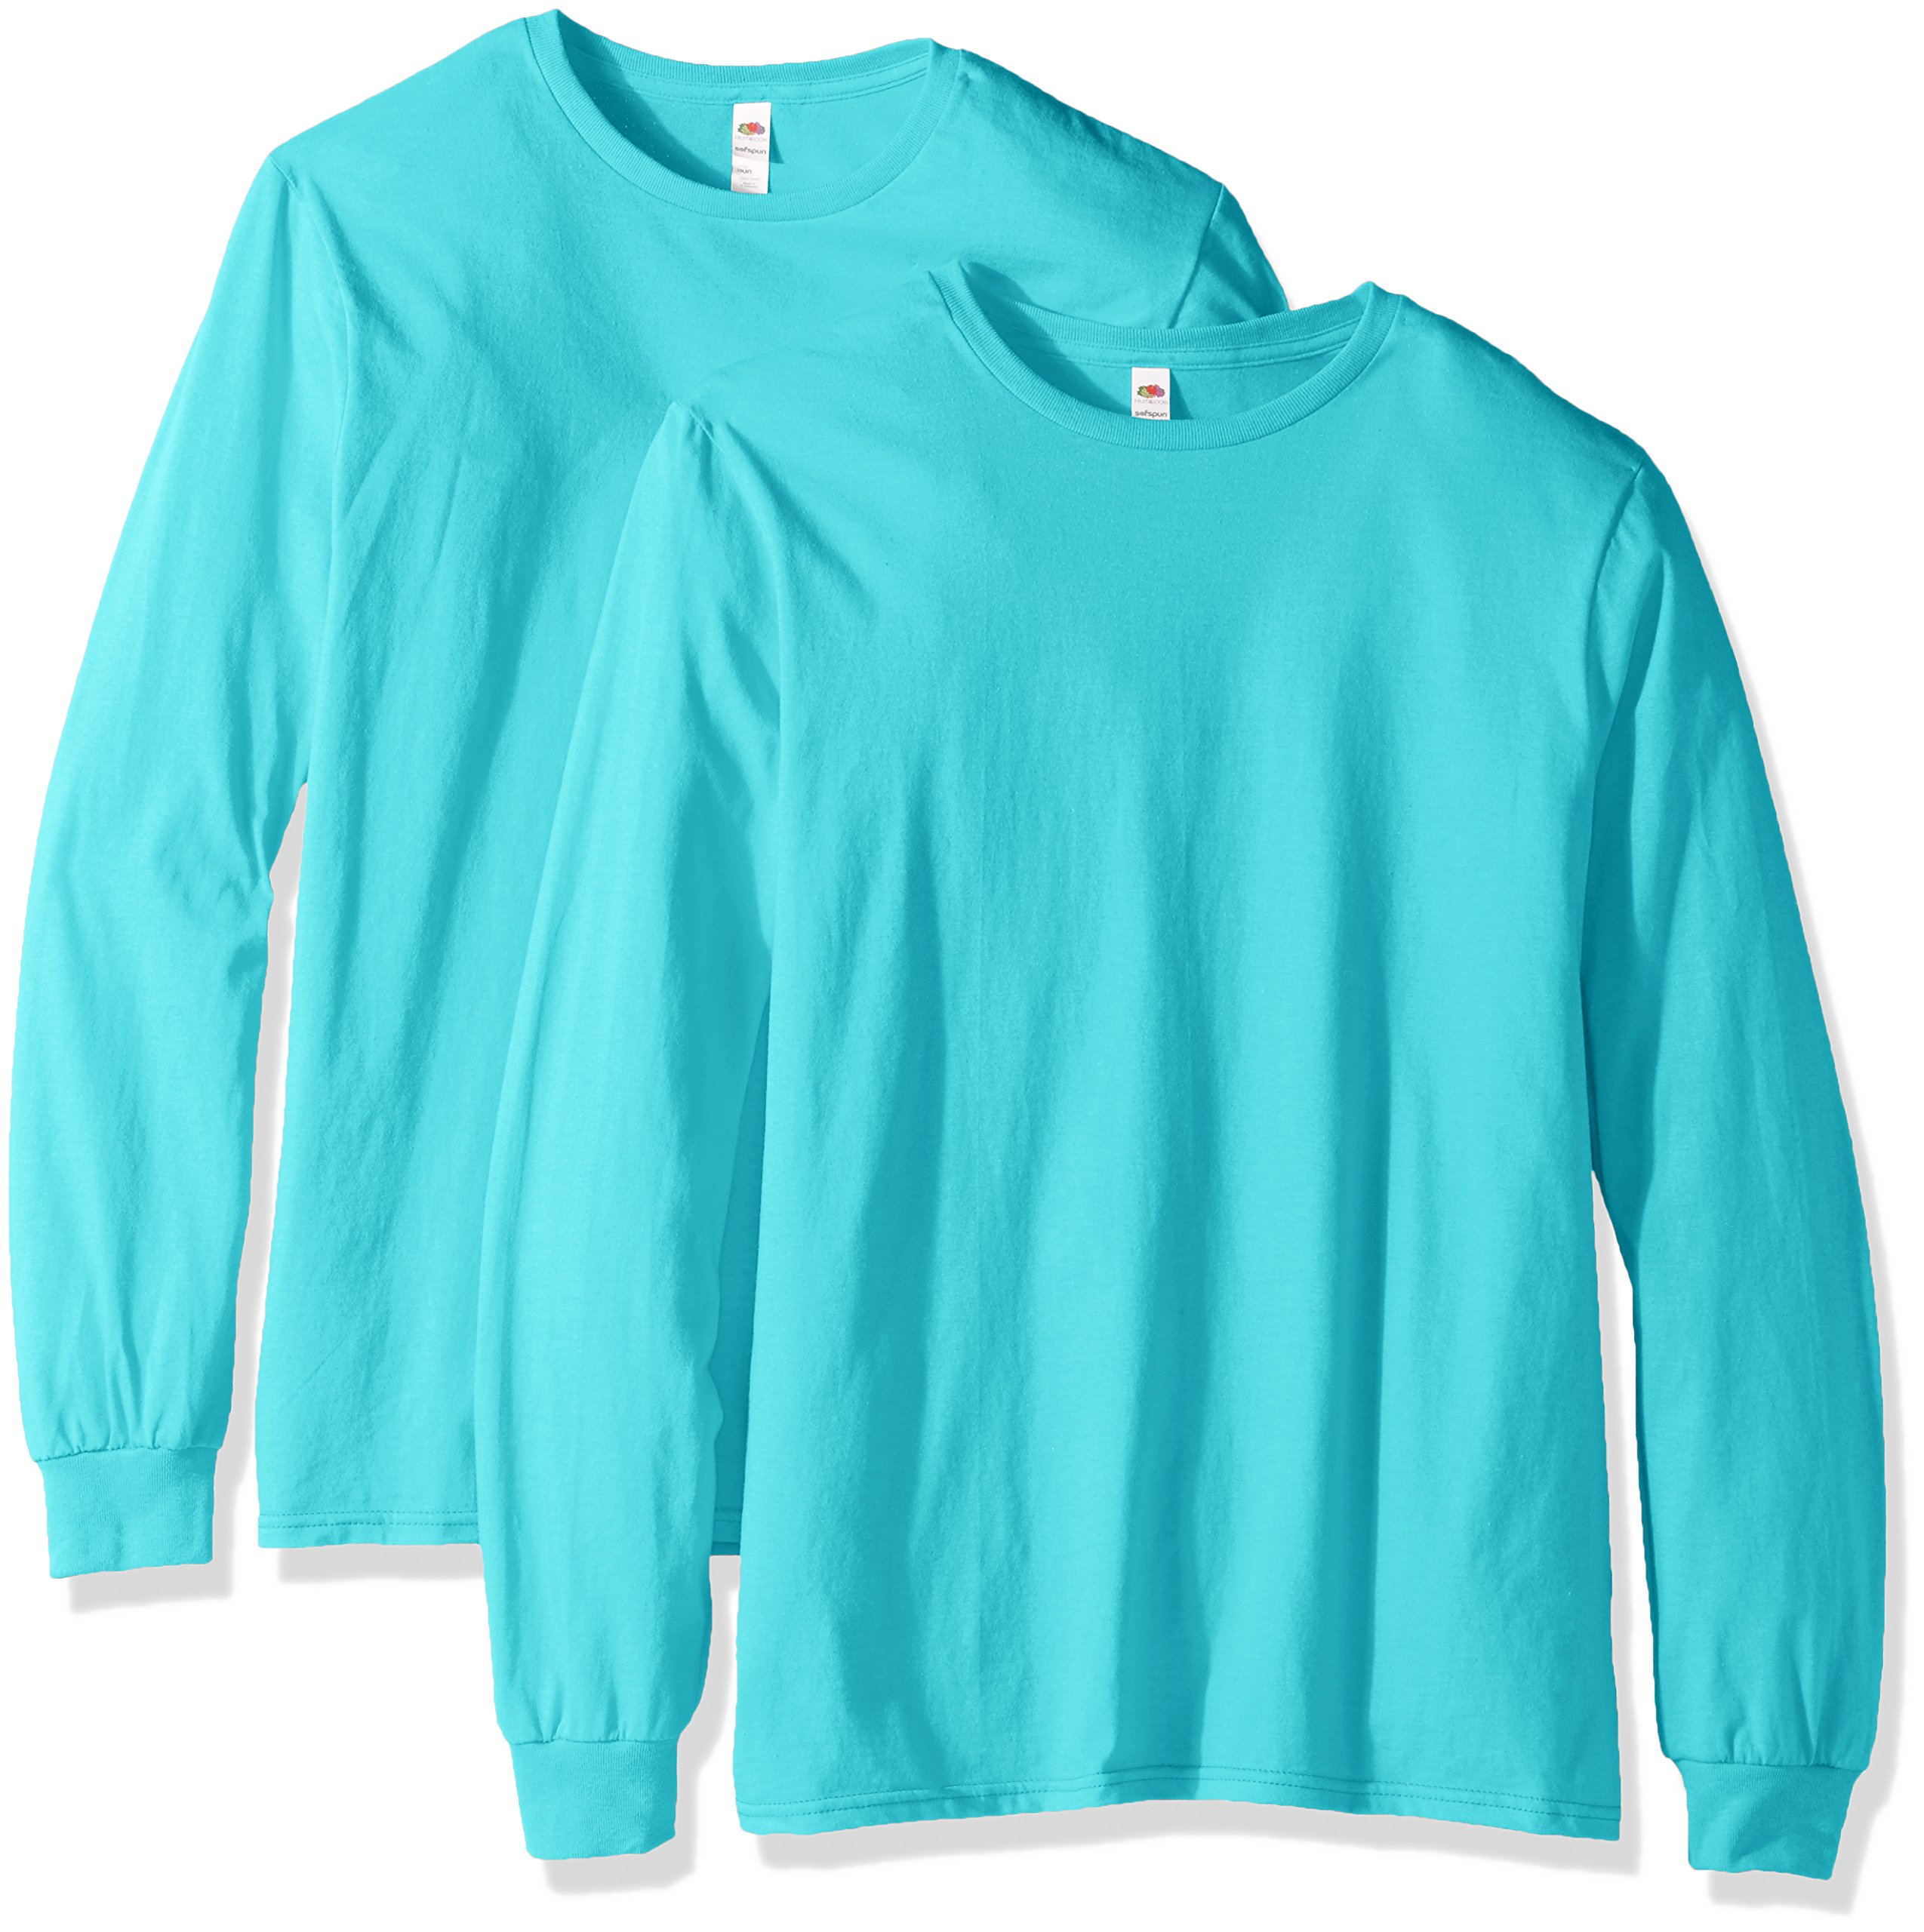 Fruit of the Loom Men's Long Sleeve T-Shirt (2 Pack), Scuba Blue, XXX-Large by Fruit of the Loom